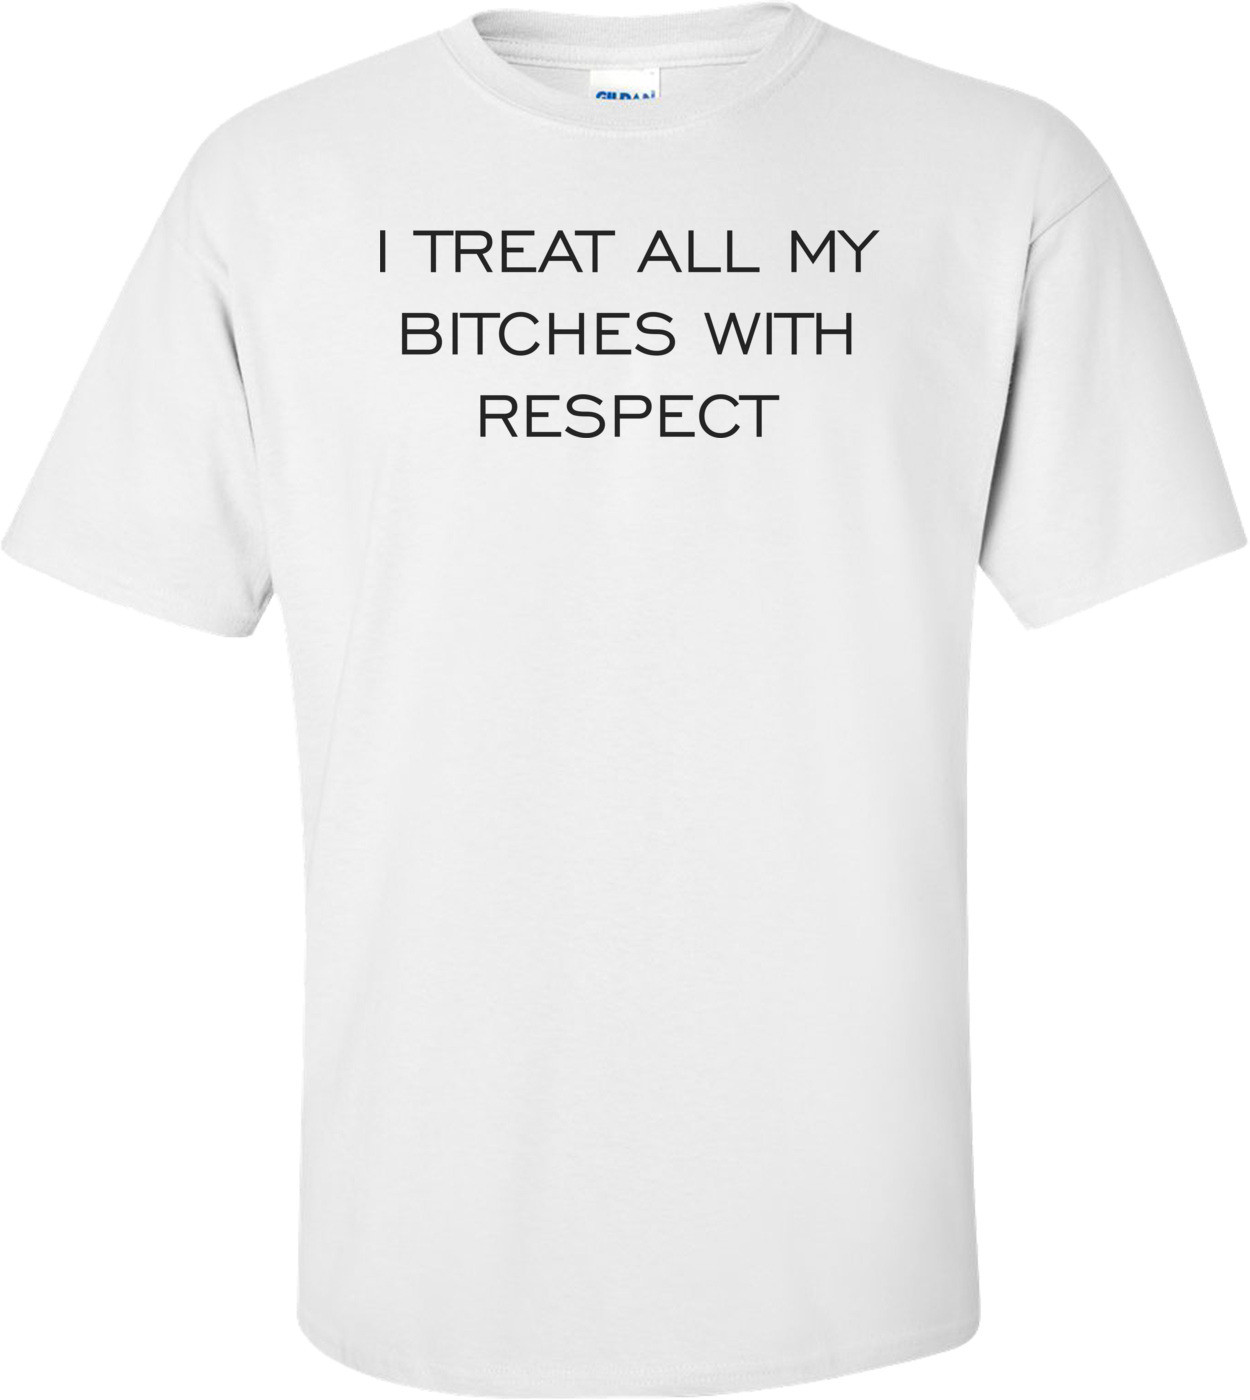 I TREAT ALL MY BITCHES WITH RESPECT Shirt